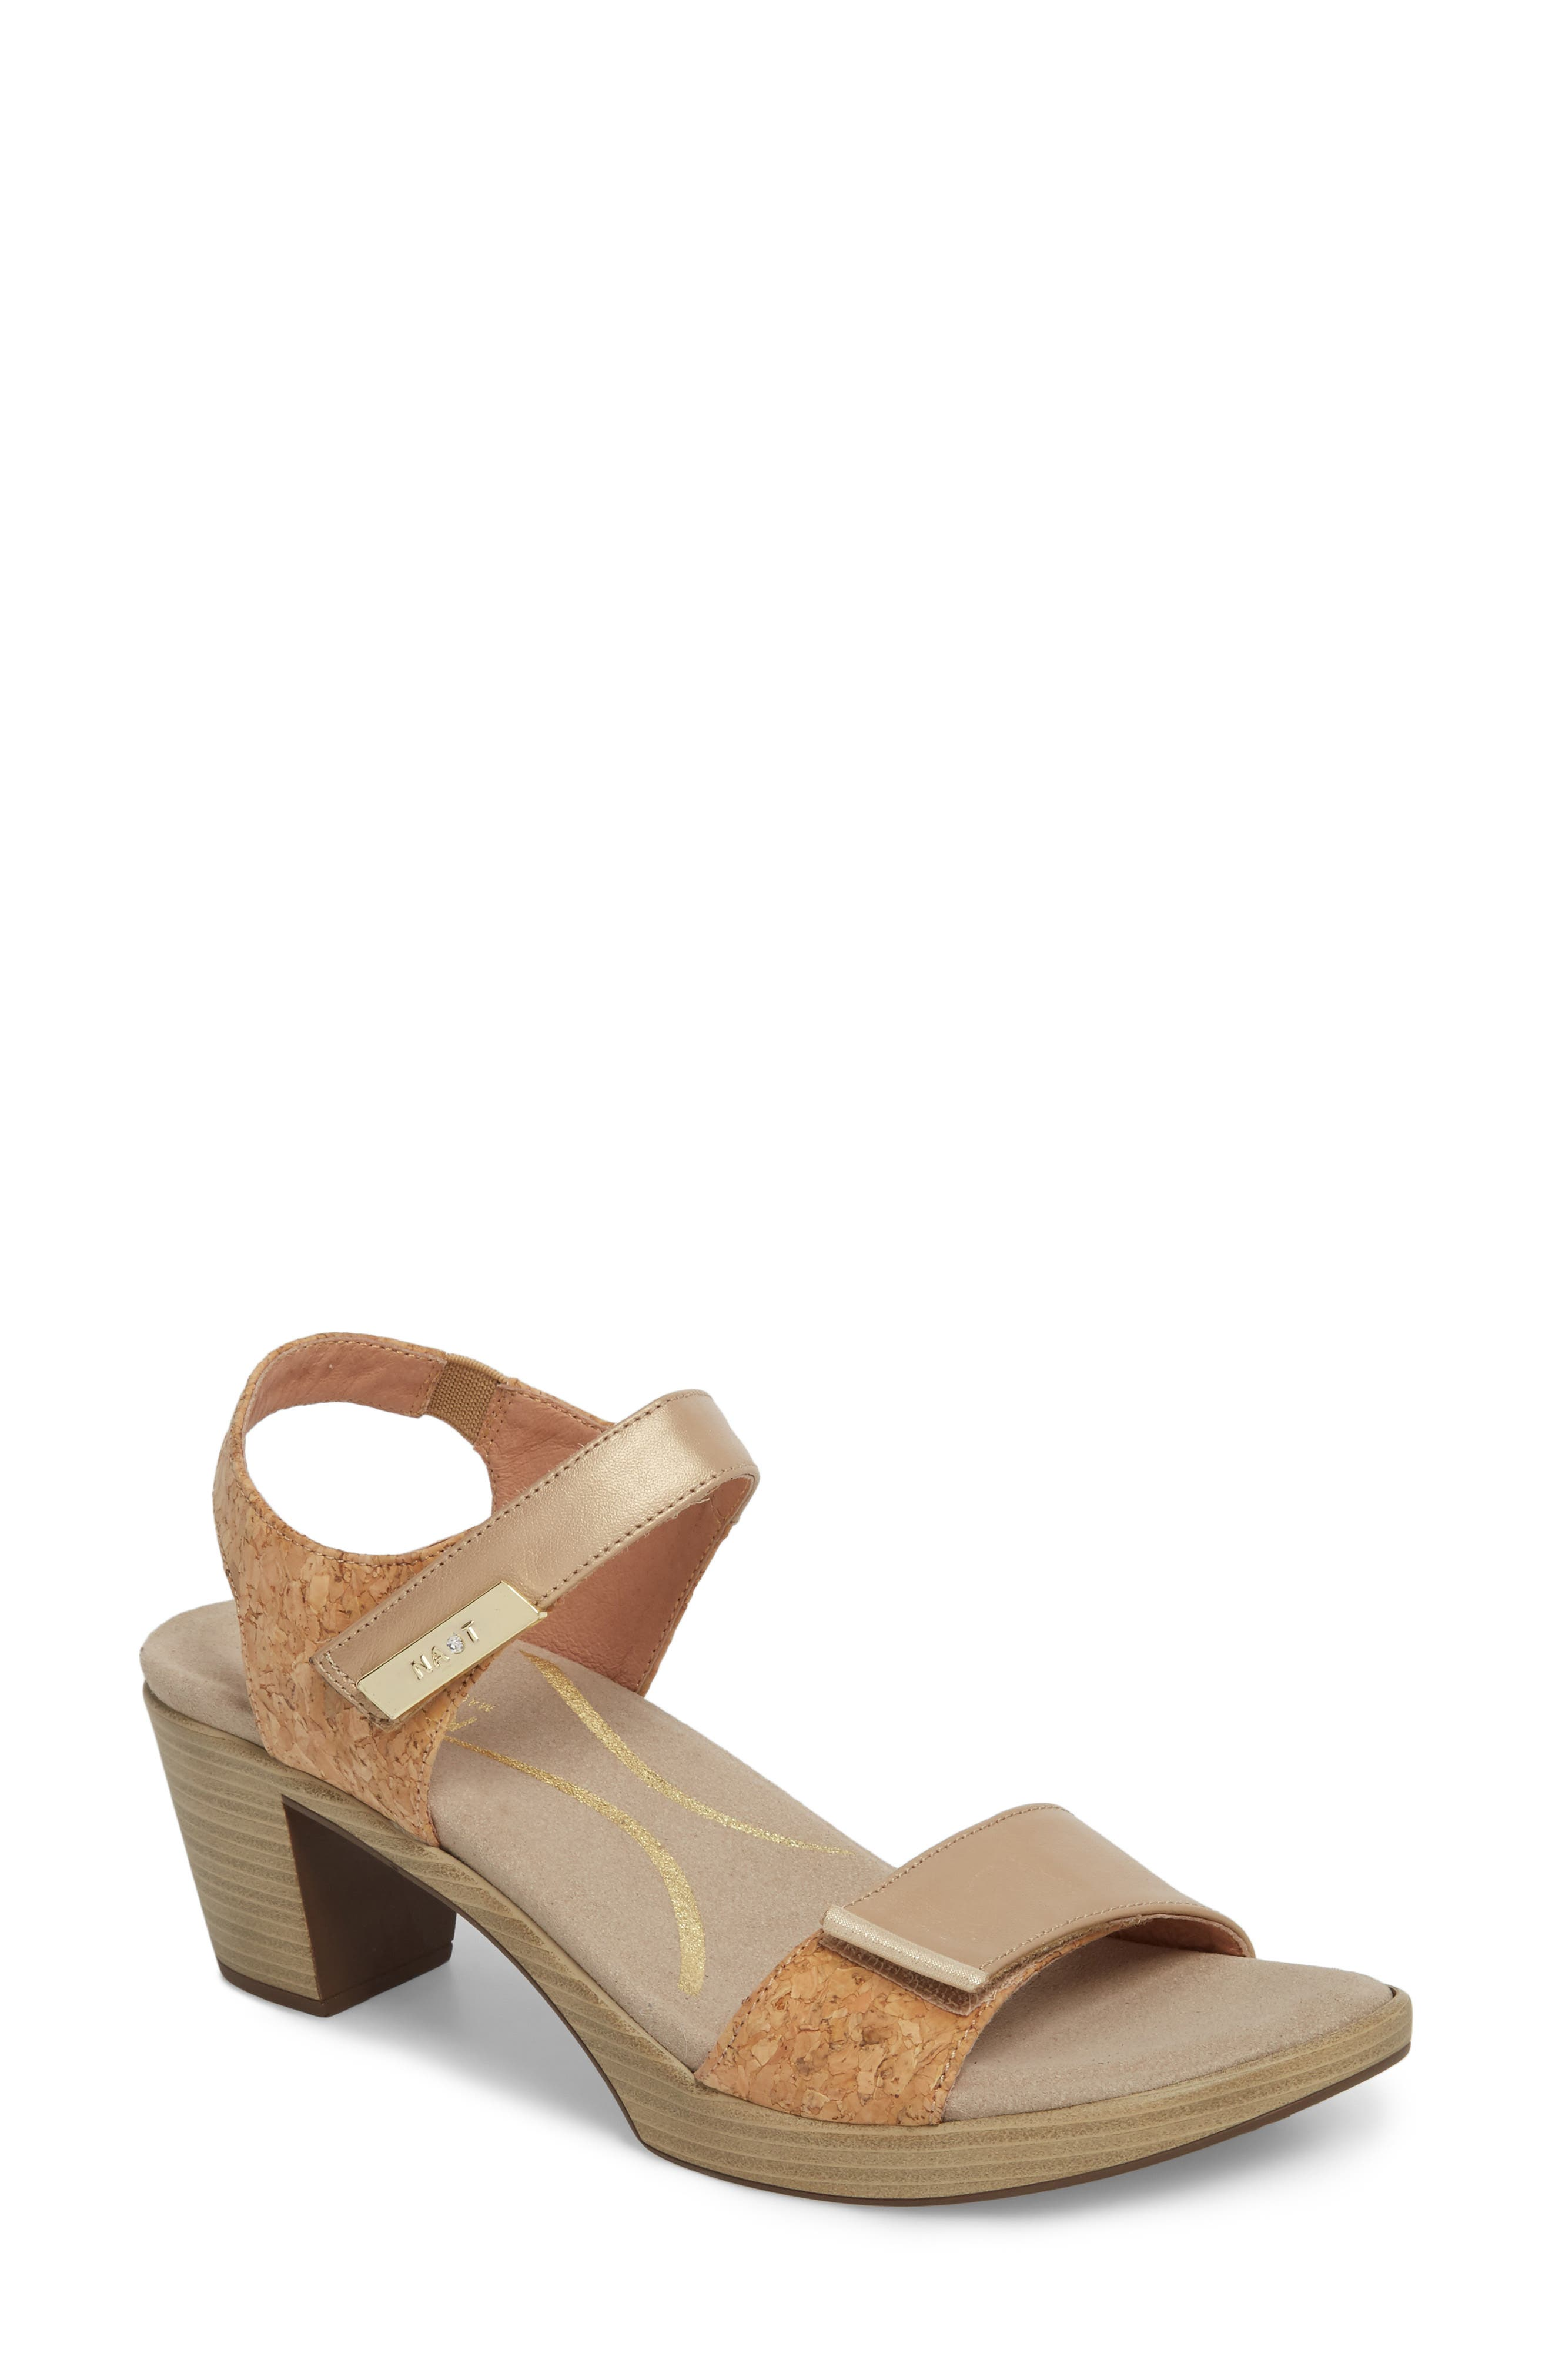 'Intact' Sandal,                             Main thumbnail 1, color,                             CHAMPAGNE LEATHER